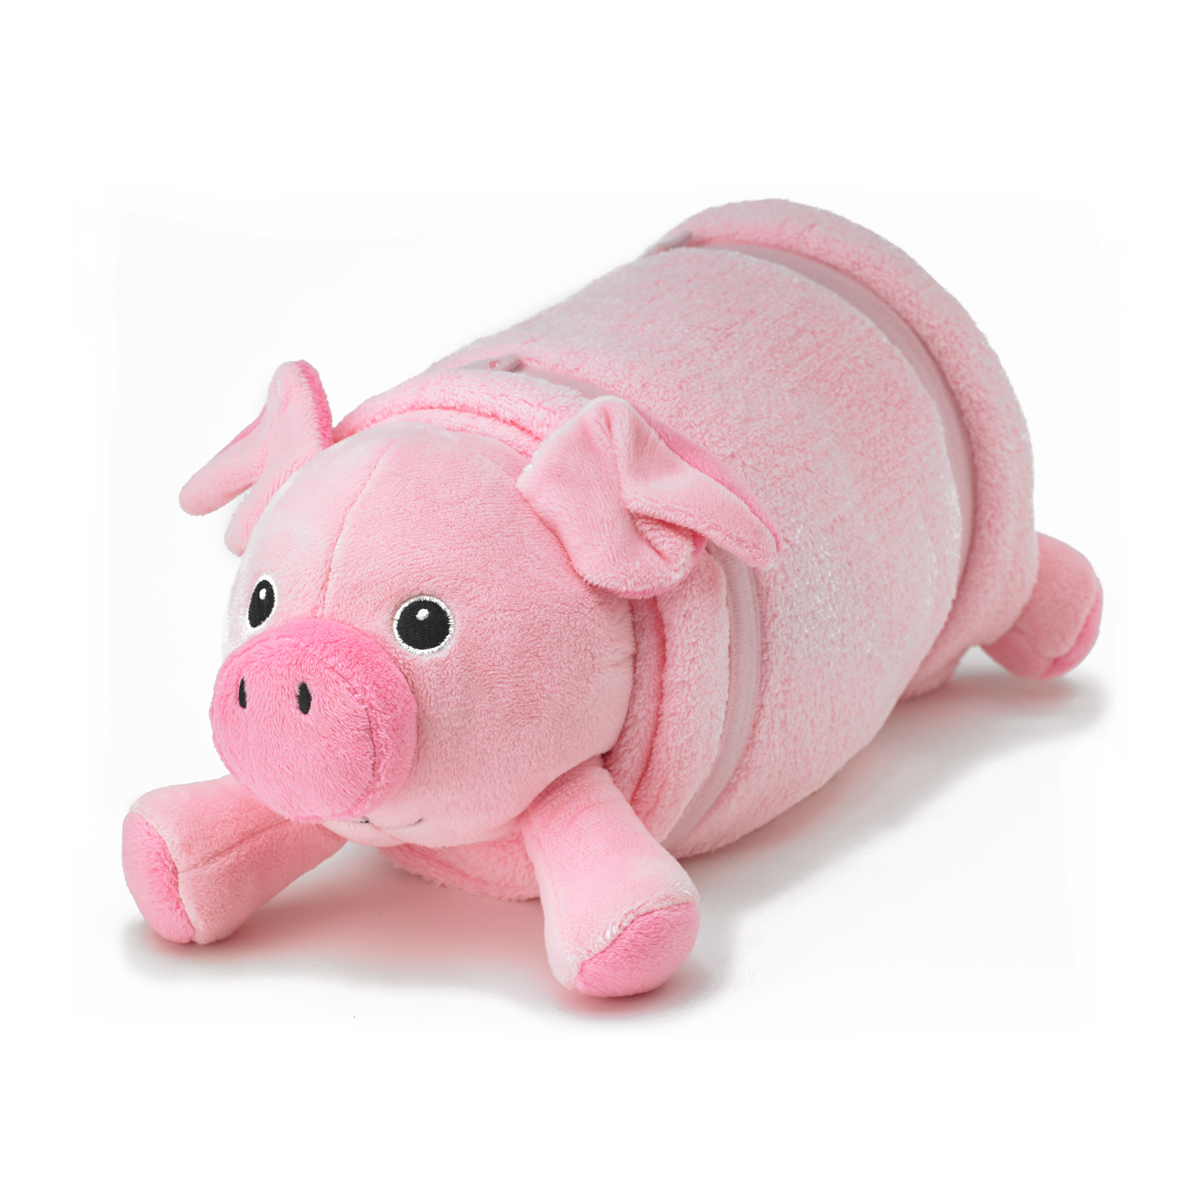 pink pig plush pet pillow with blanket